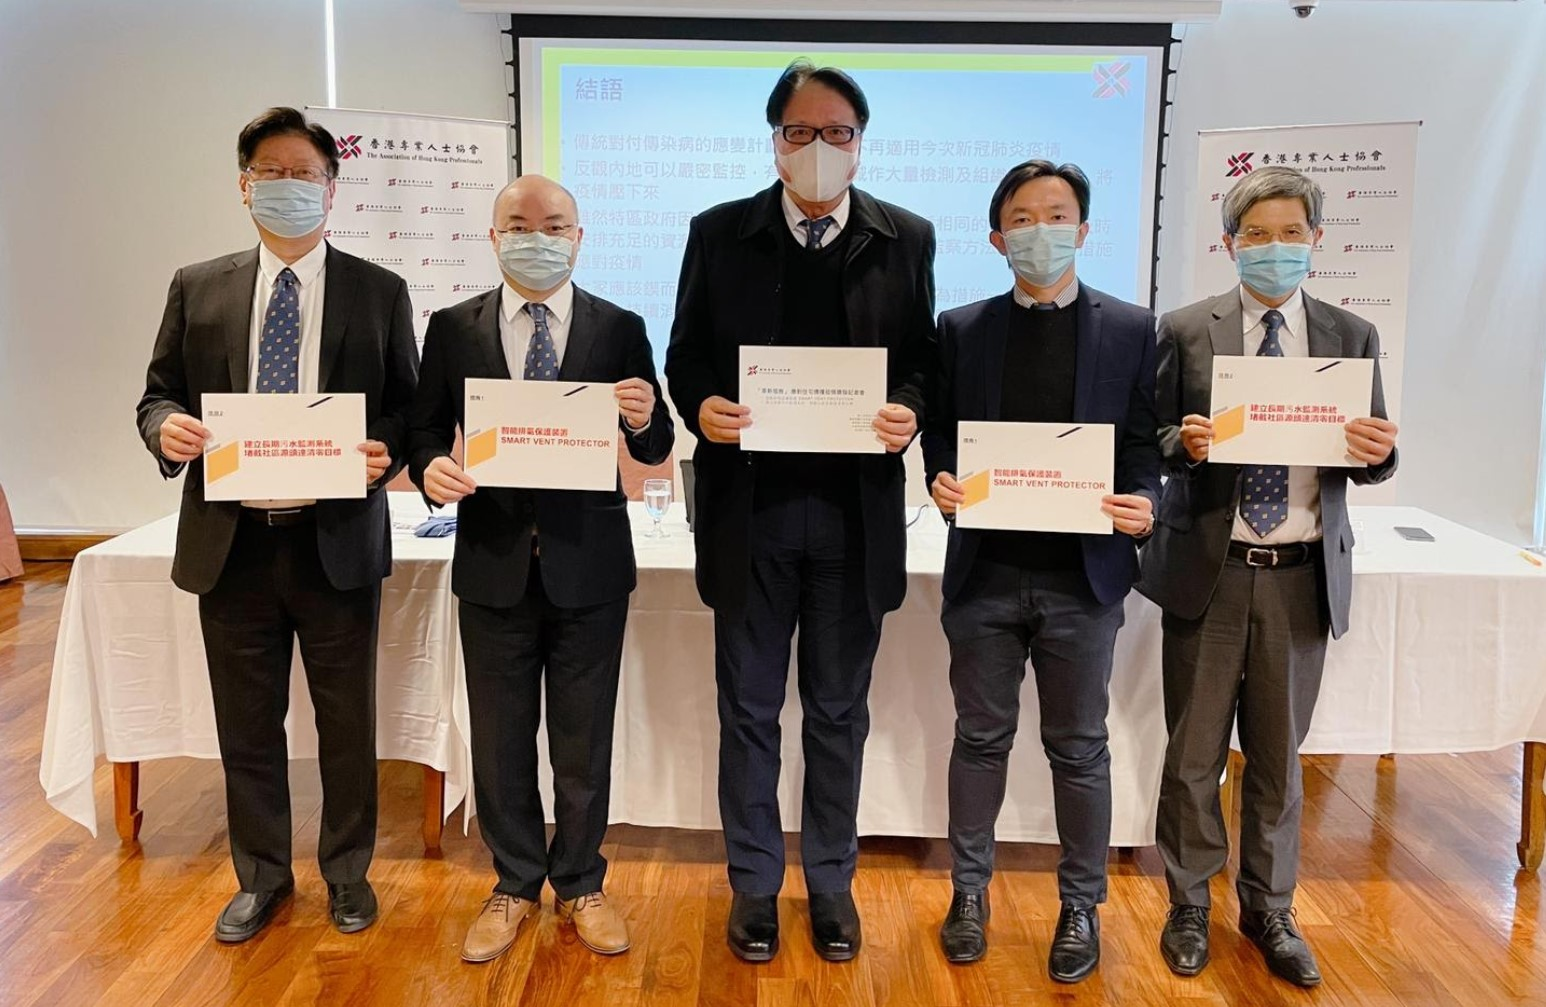 The Association of Hong Kong Professionals Proposes Innovative Measures to Curb Pandemic